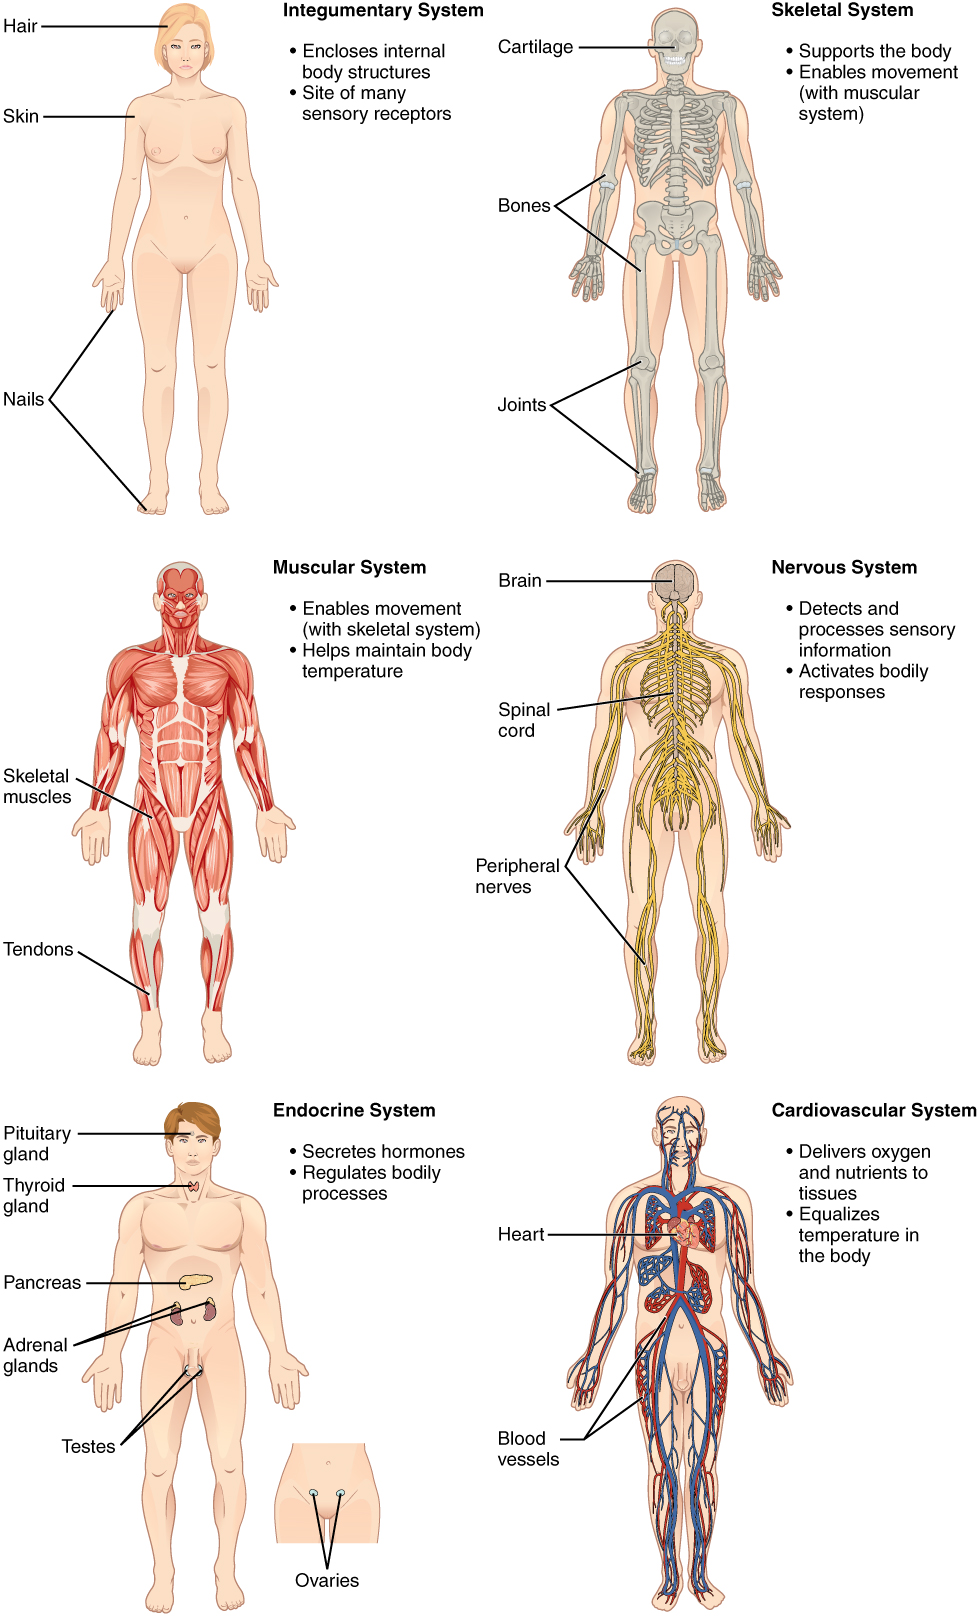 List of systems of the human body